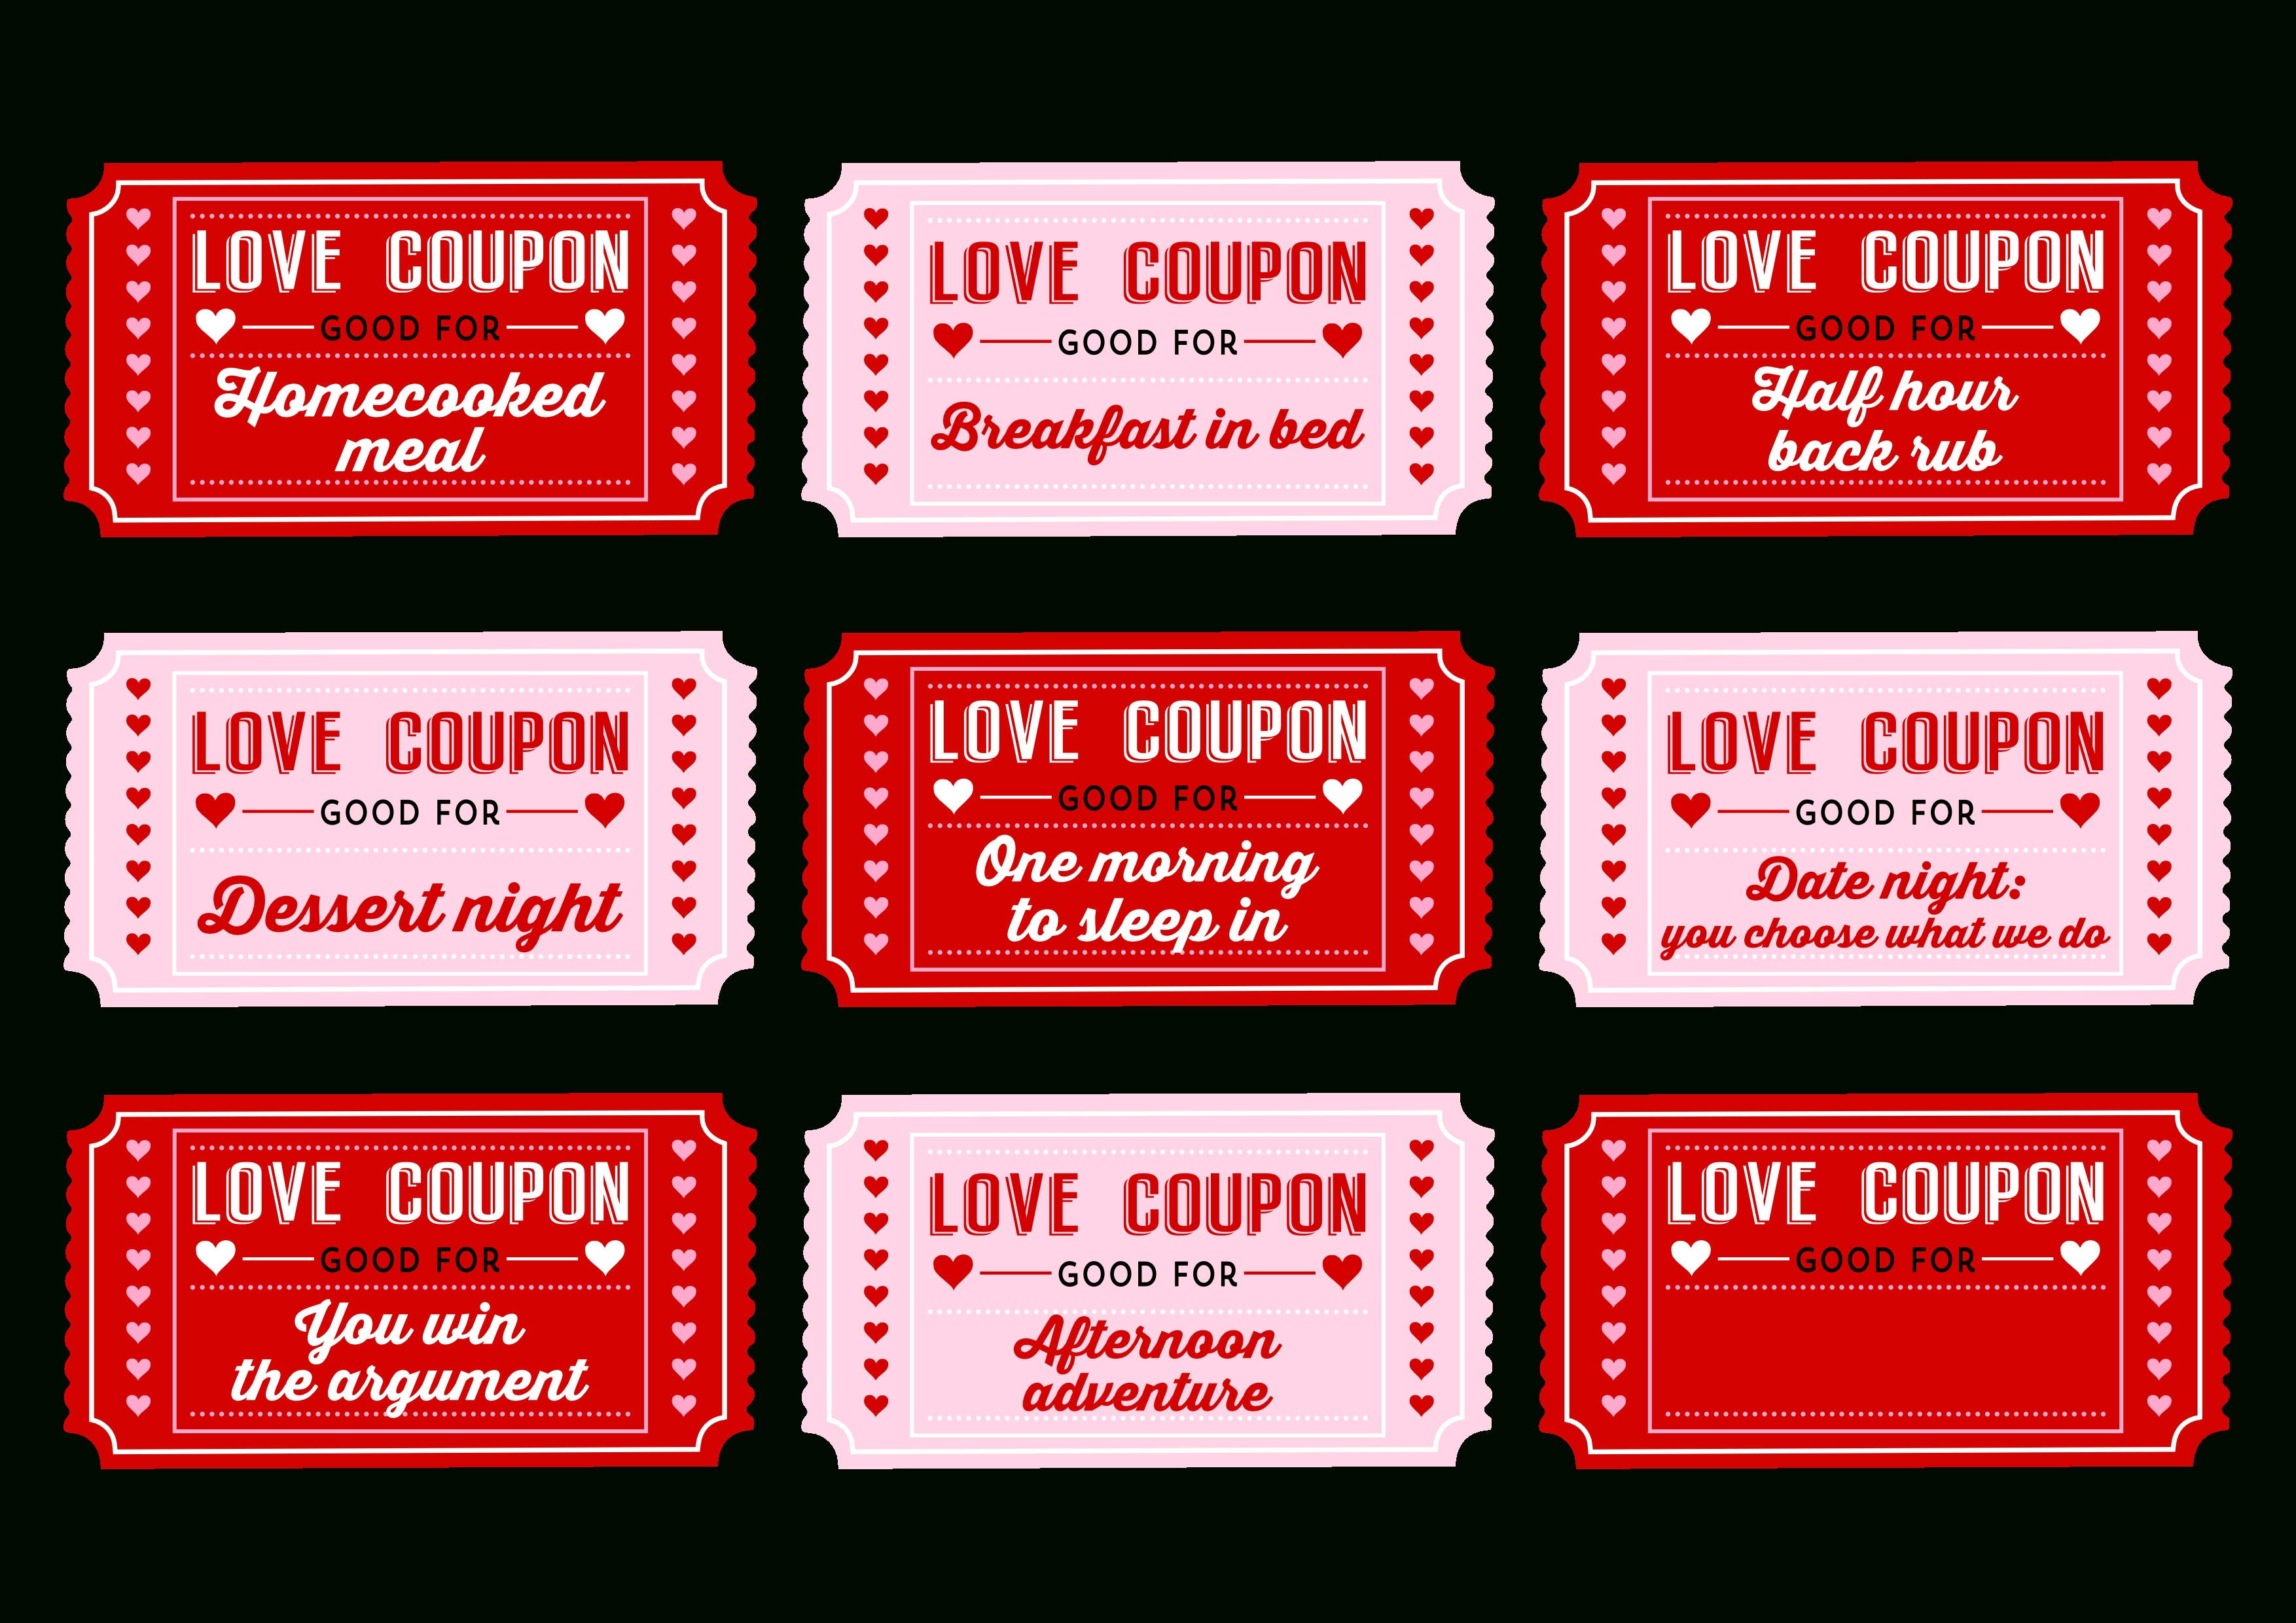 10 Wonderful Coupon Book Ideas For Girlfriend 2021